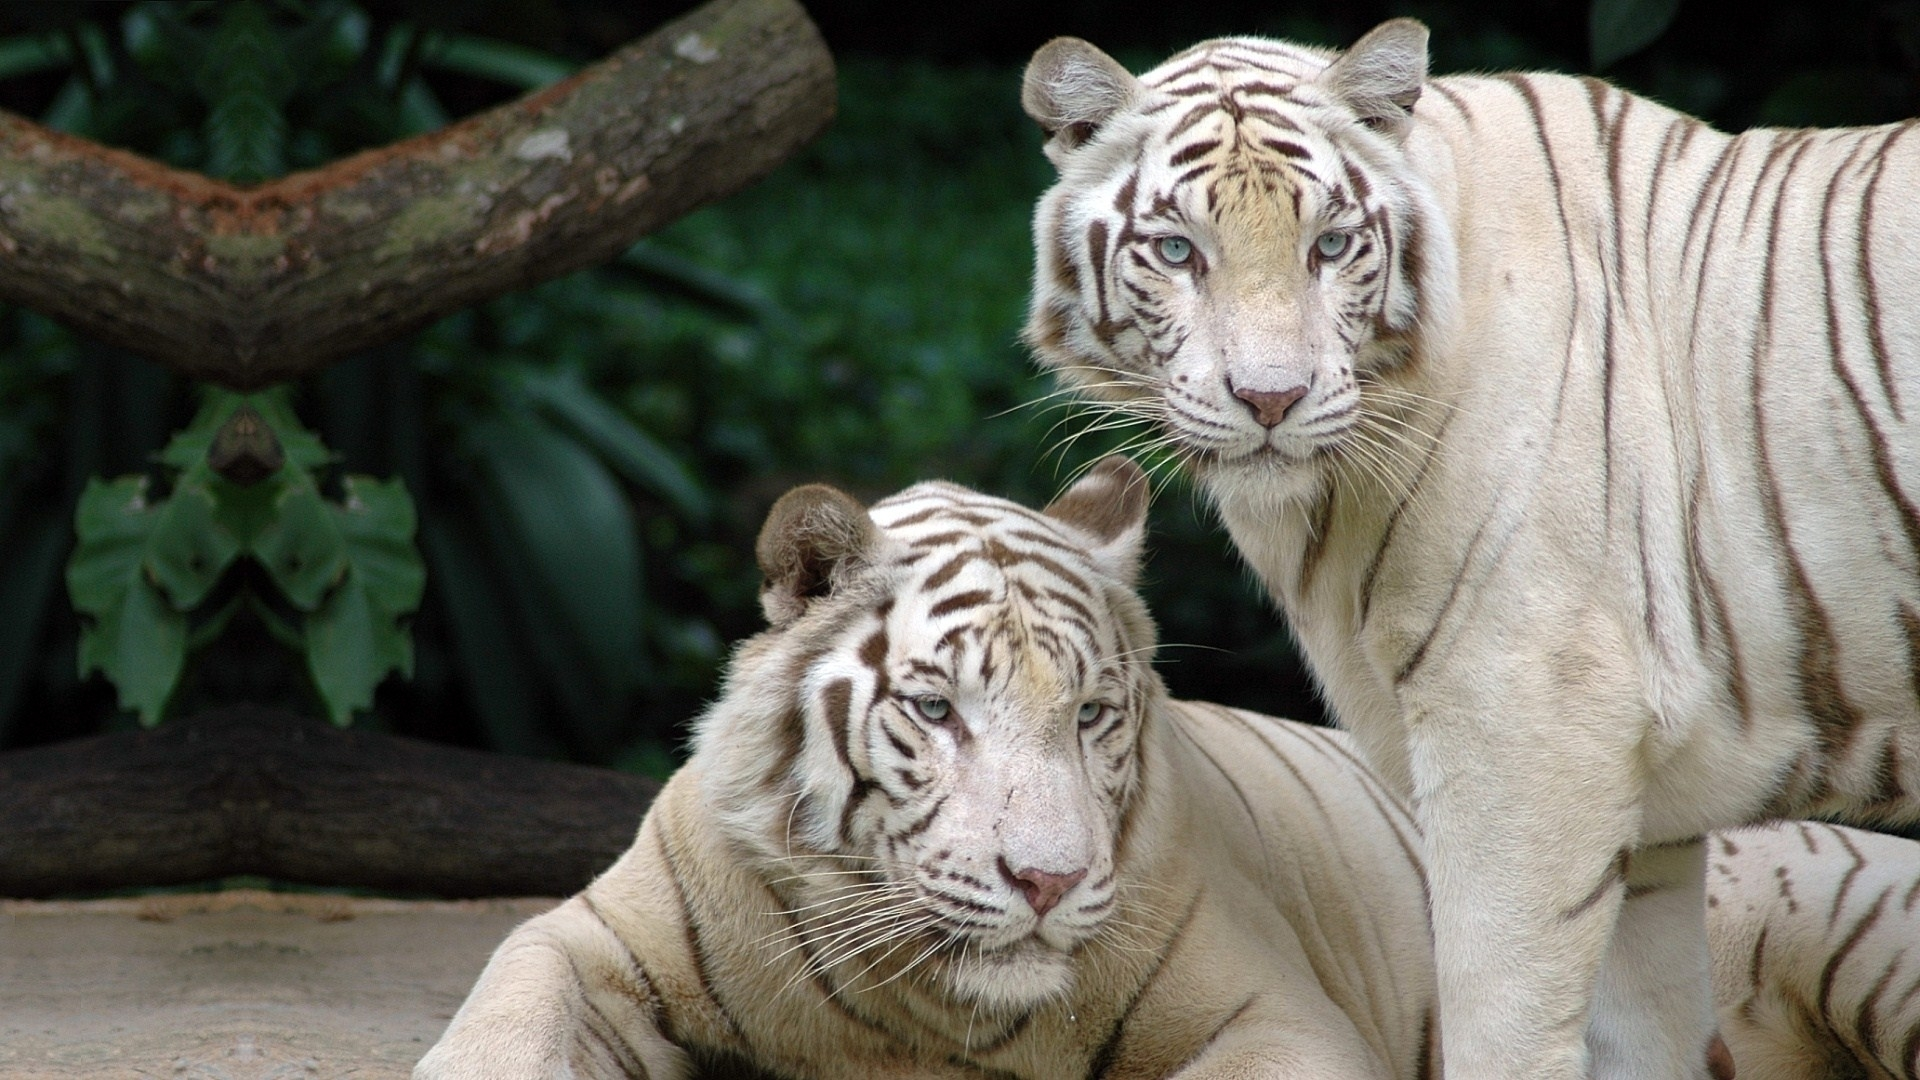 White tiger hd wallpaper background image 1920x1080 id 660987 wallpaper abyss - Tiger hd wallpaper for pc ...